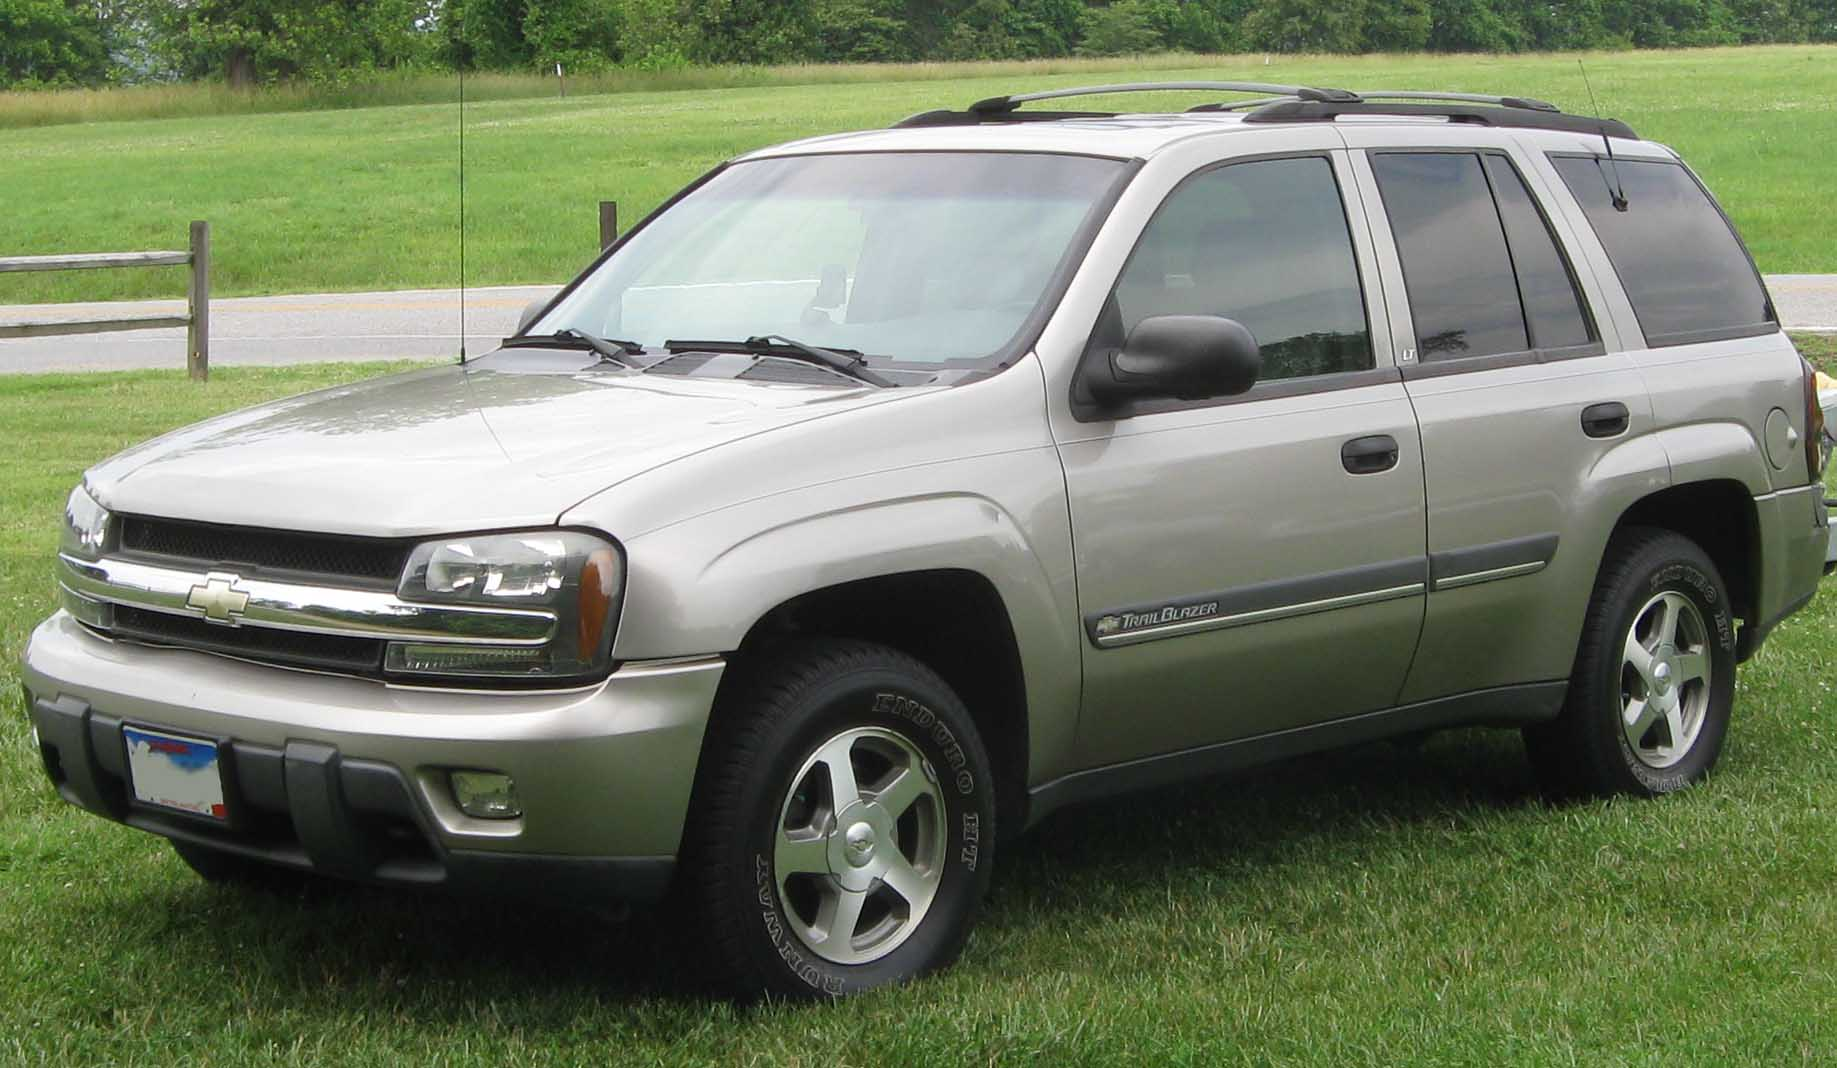 Chevrolet Trailblazer Wikipedia 2007 Saab 9 3 Engine Diagram